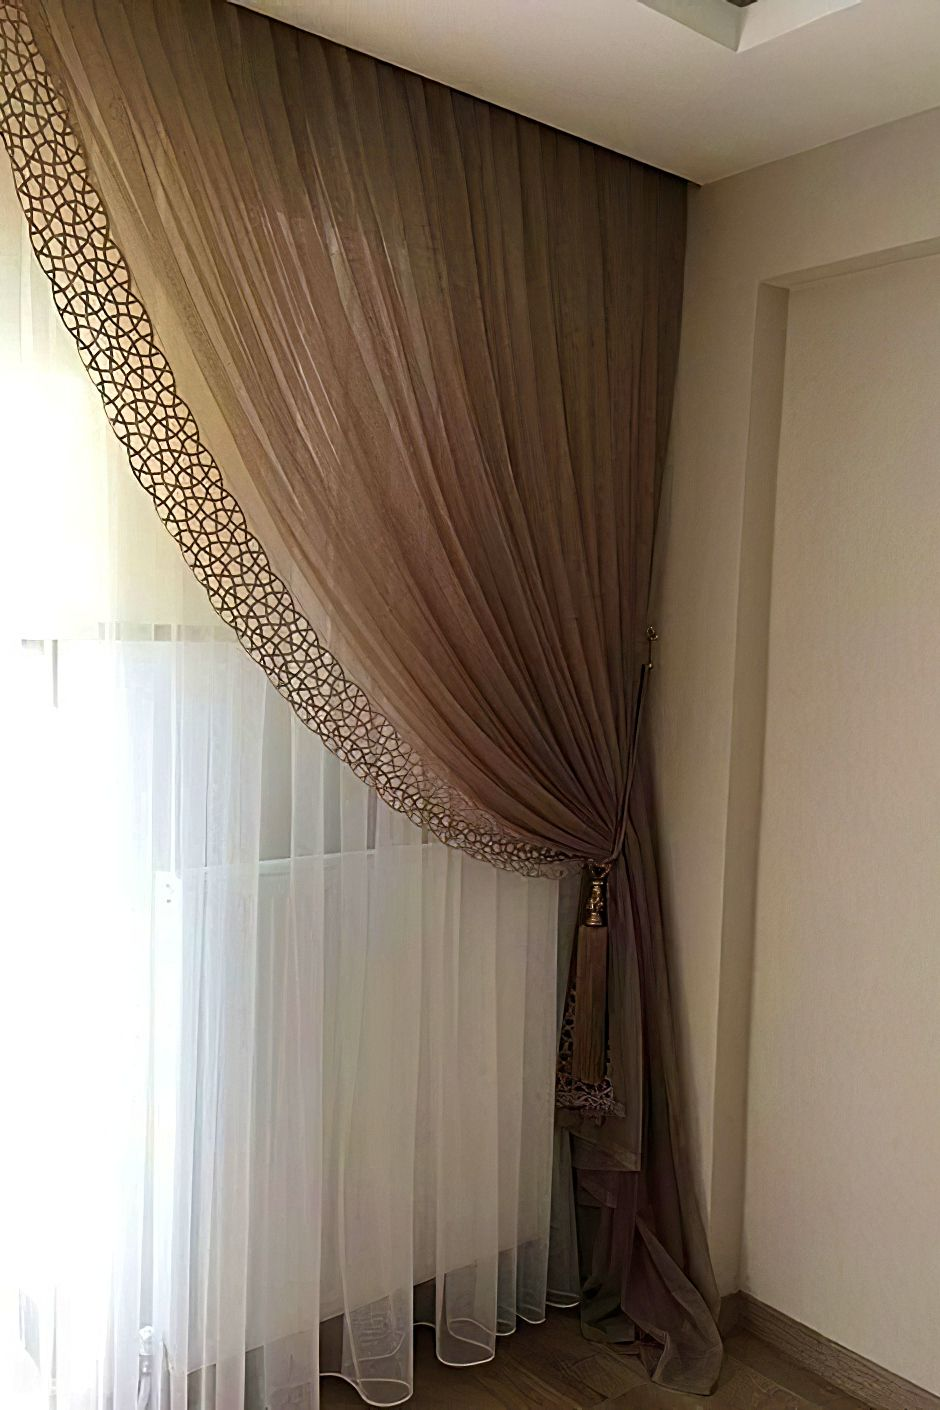 Home Made Curtains in 2020 (With images) | Curtains living ...